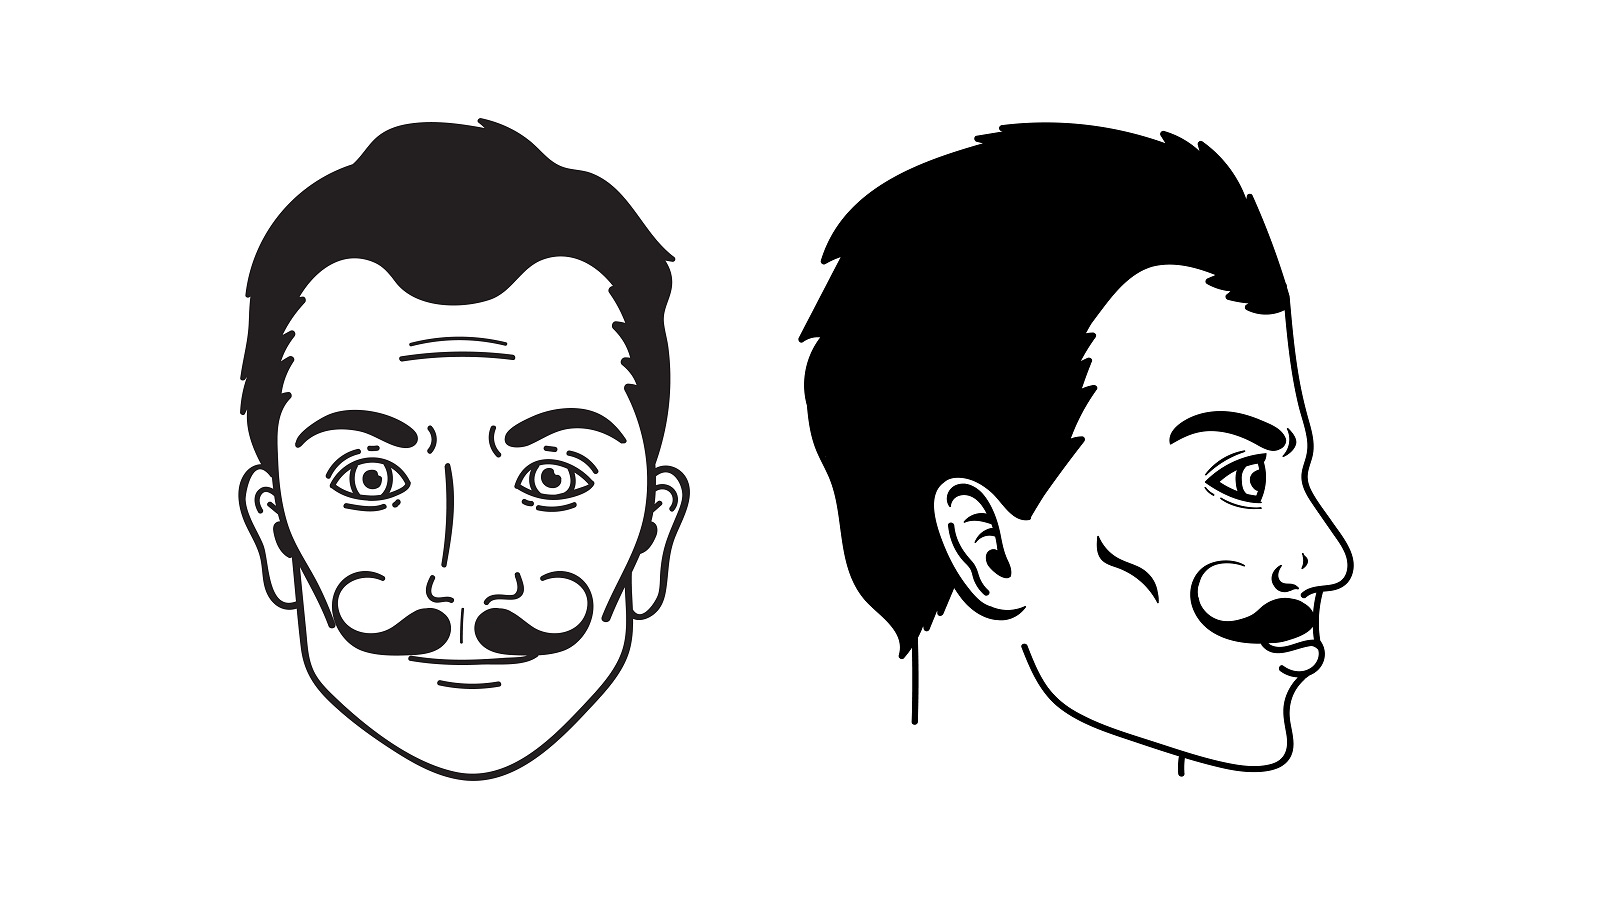 Imperial Mustache, a facial hair style